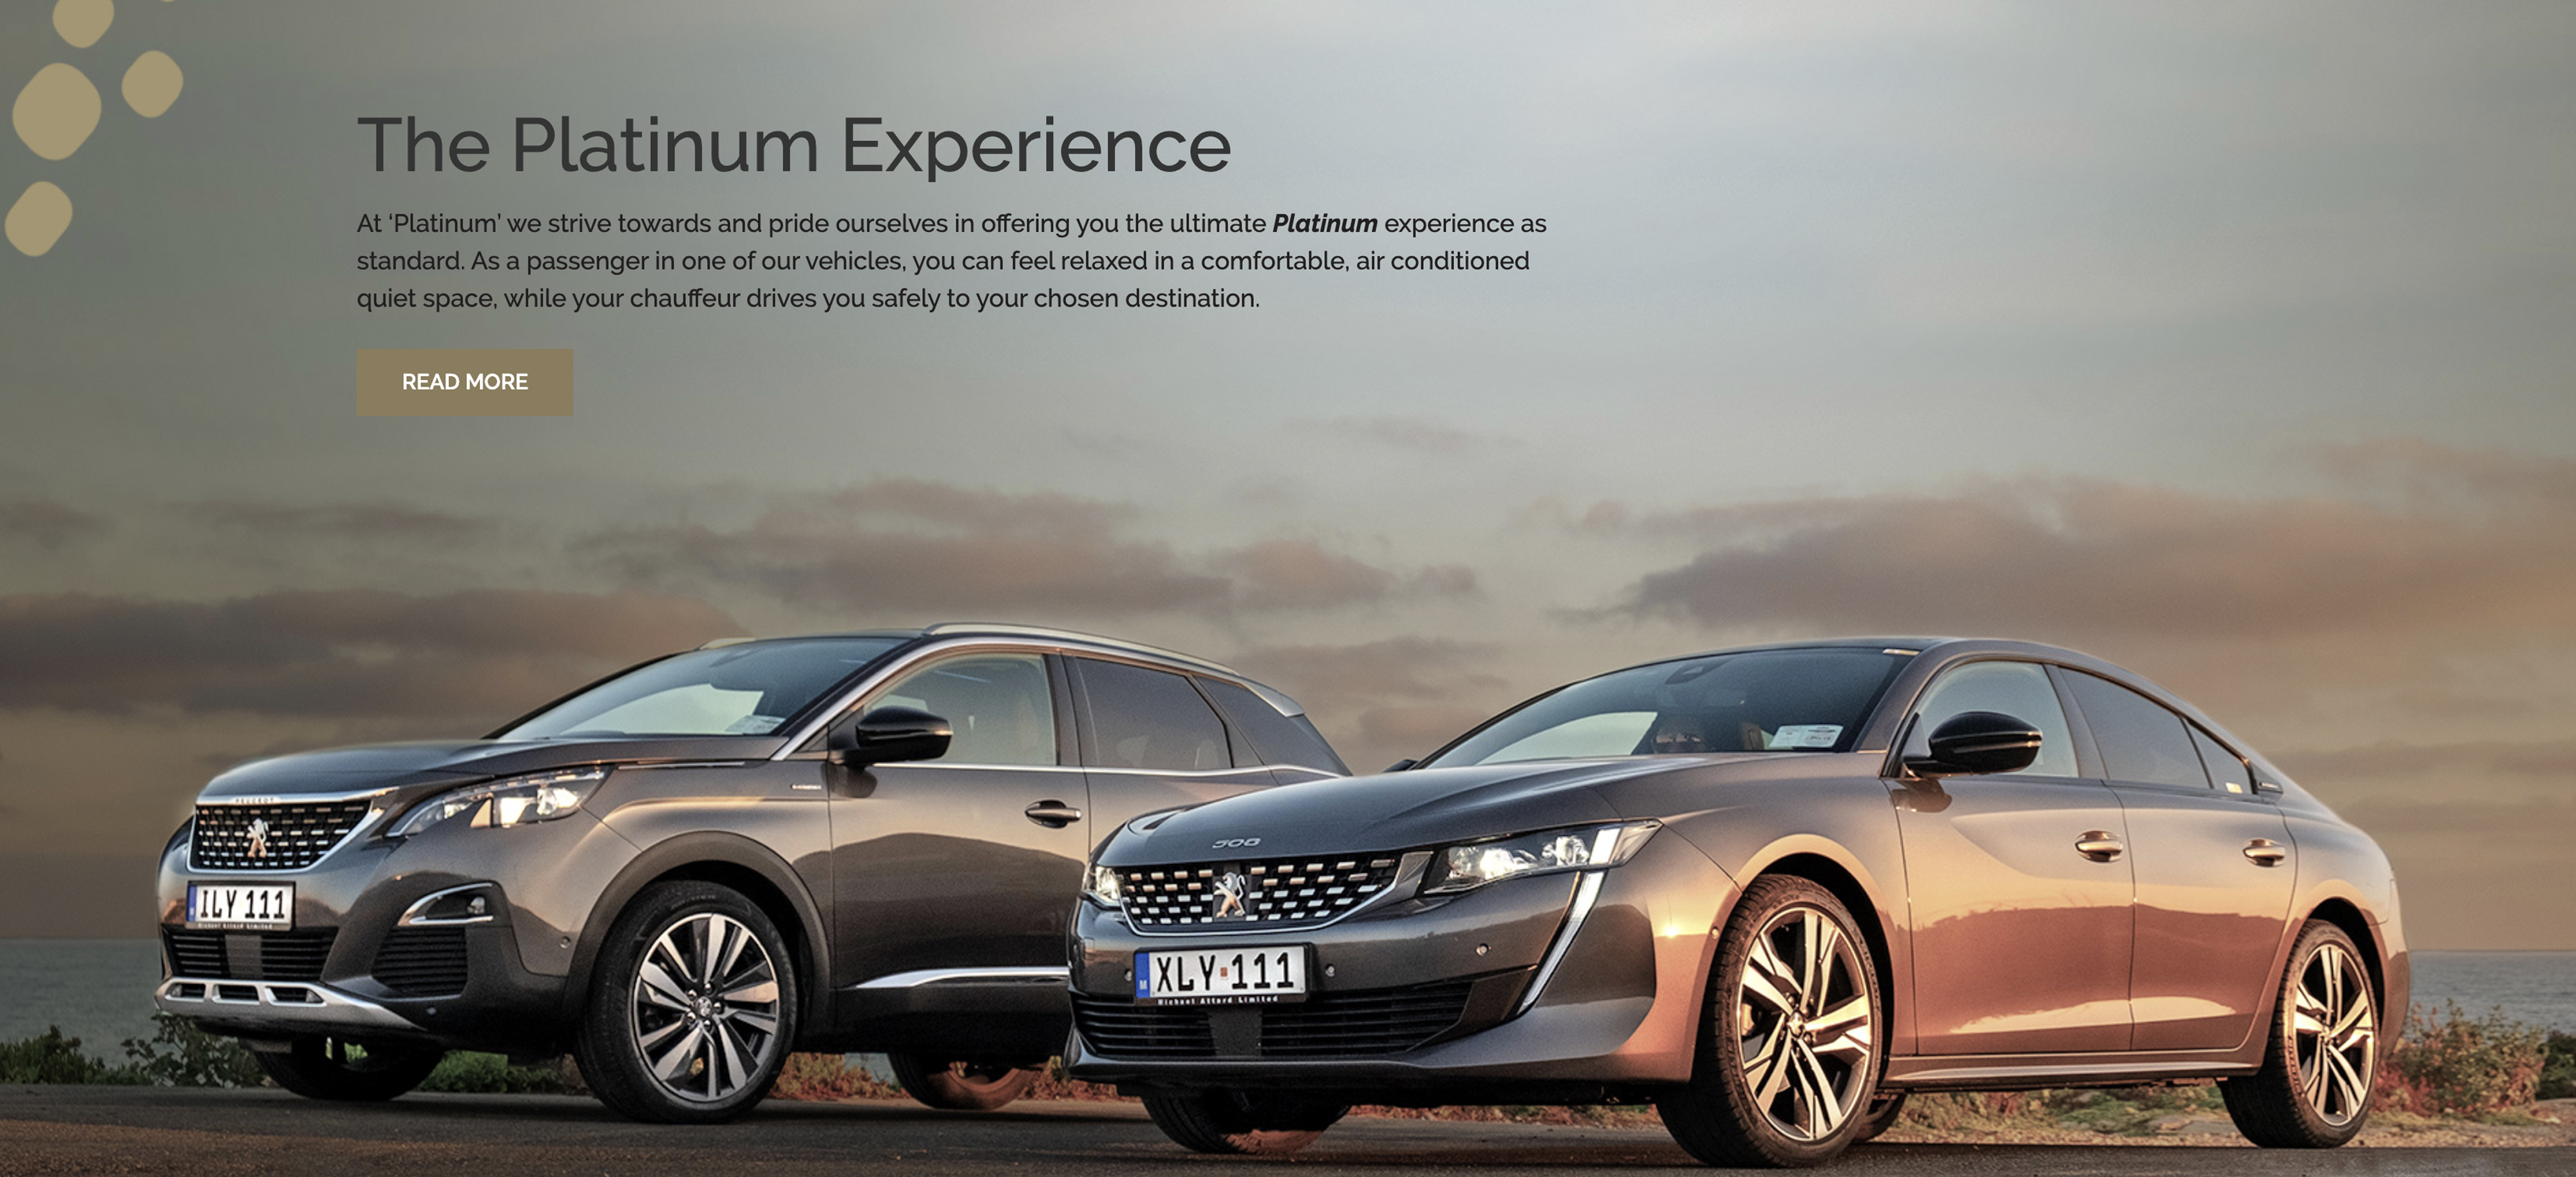 Platinum Cabs website